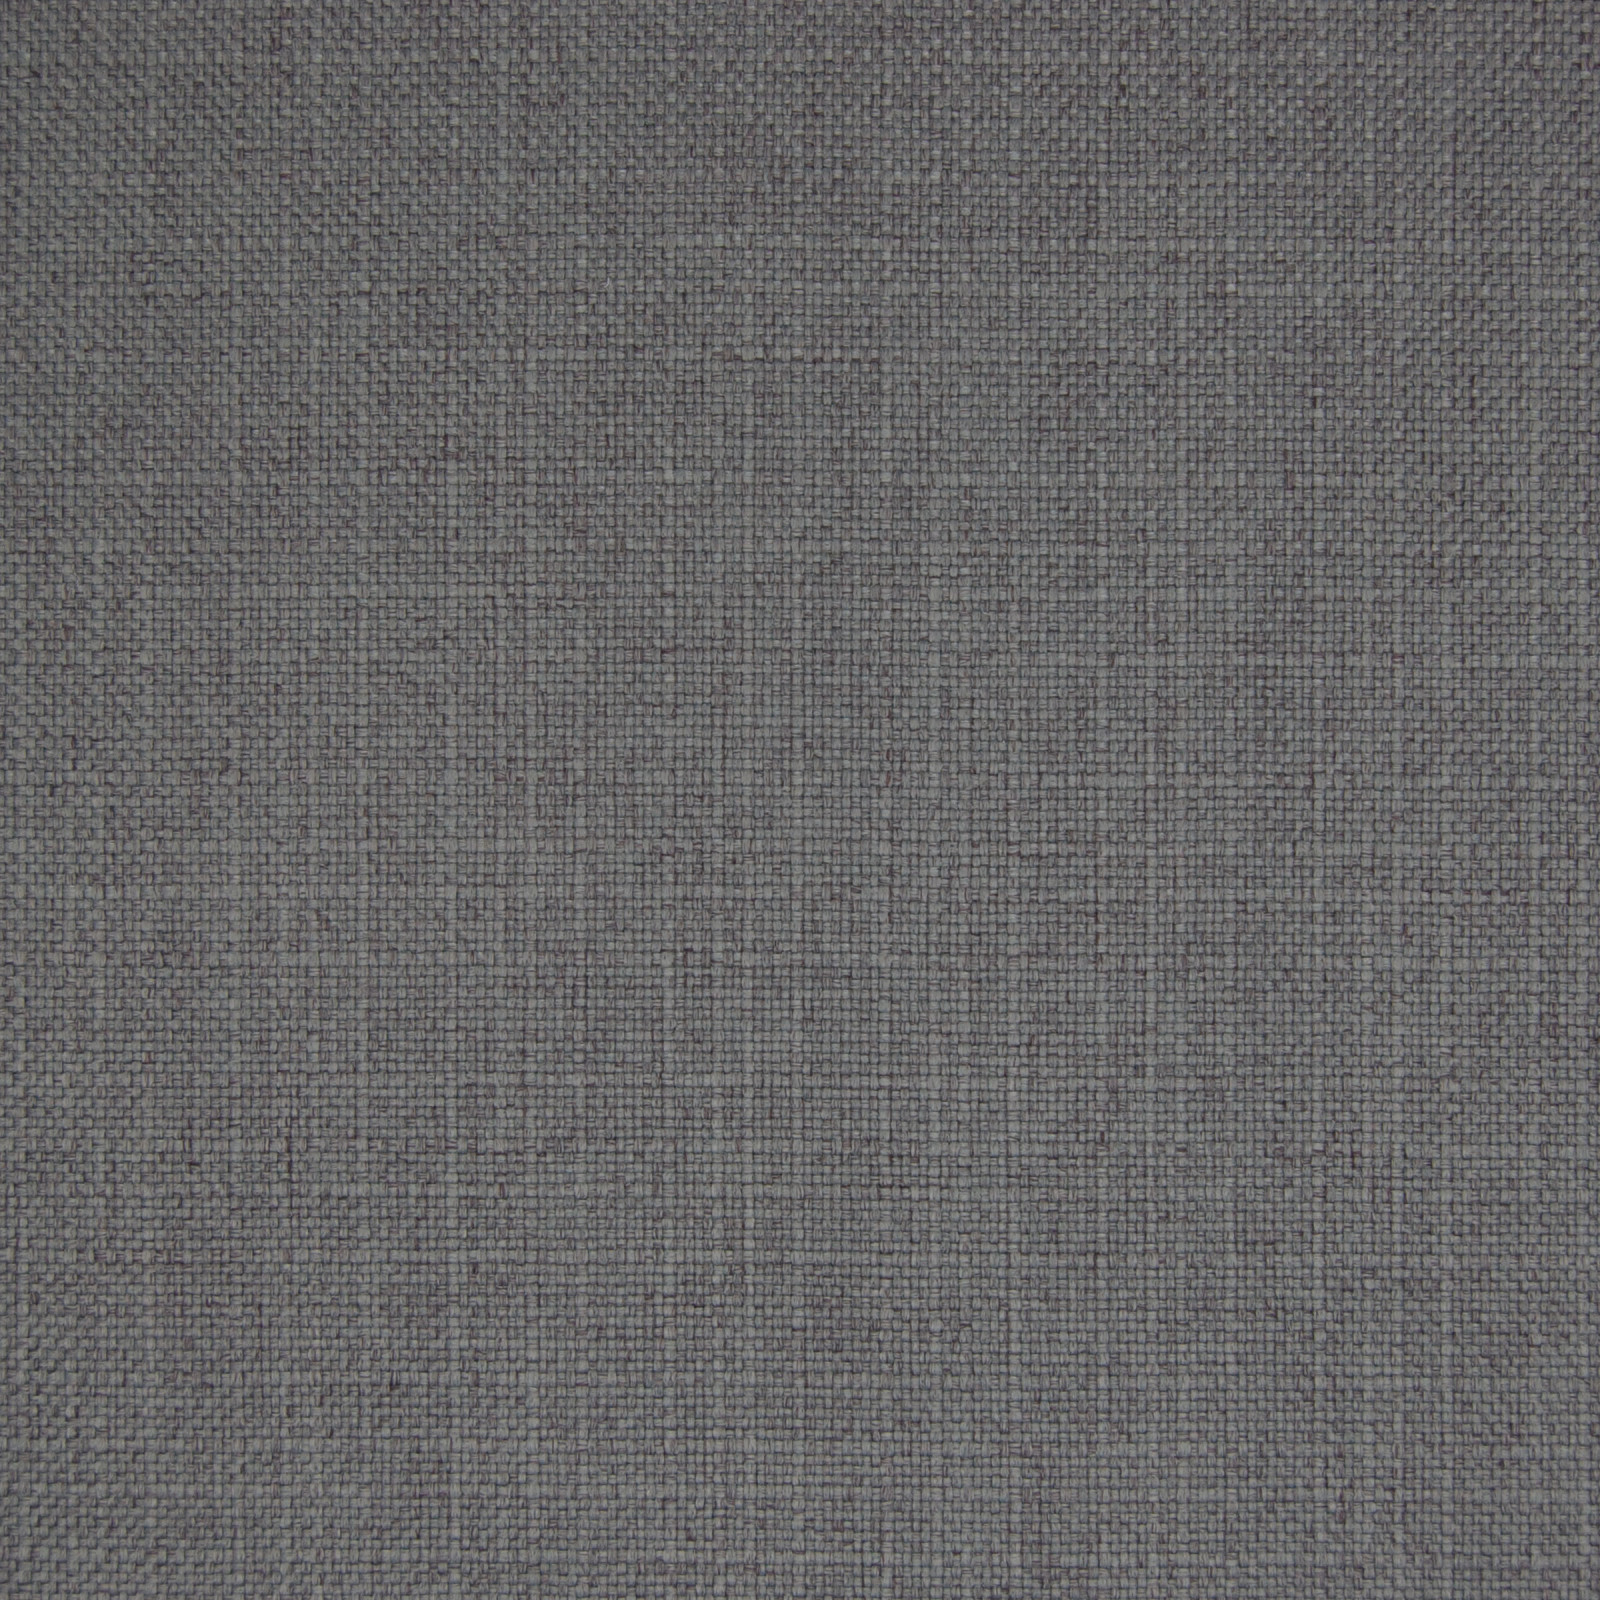 Iron Gray Solid Essentials Upholstery Fabric